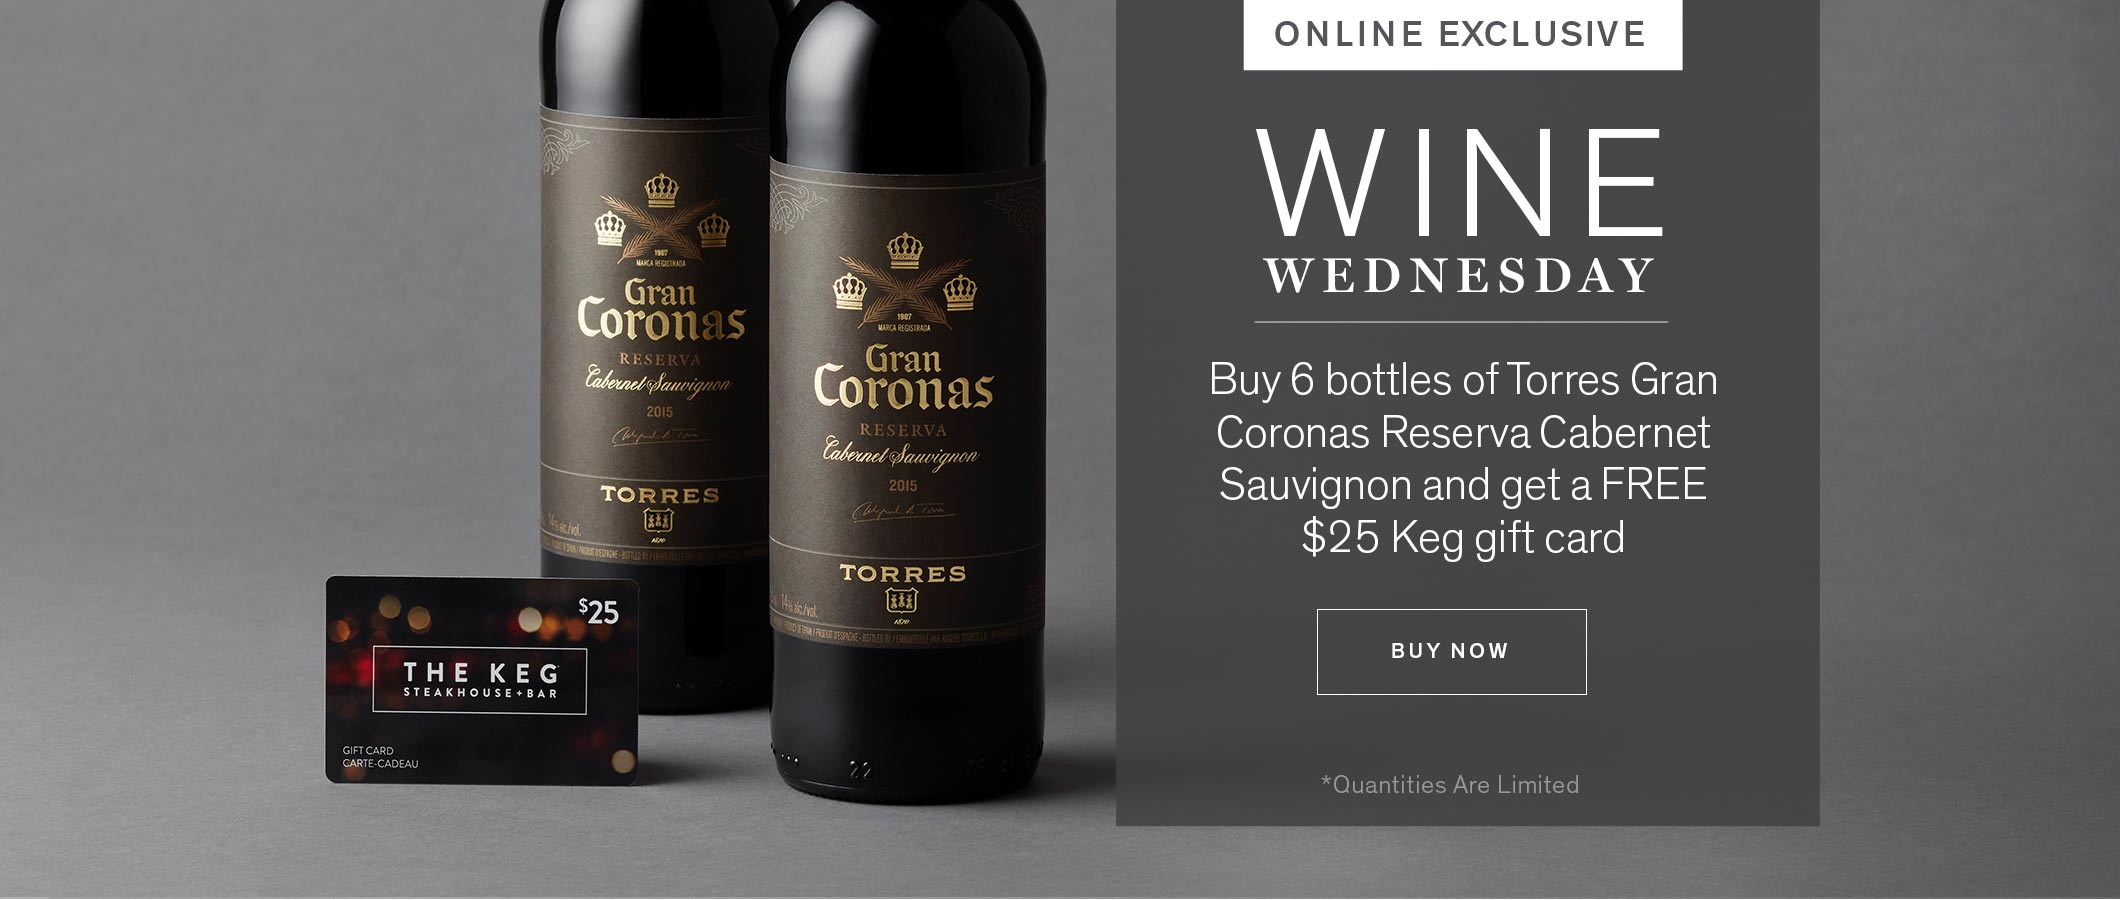 WINE WEDNESDAY. ONLINE EXCLUSIVE. BUY NOW.